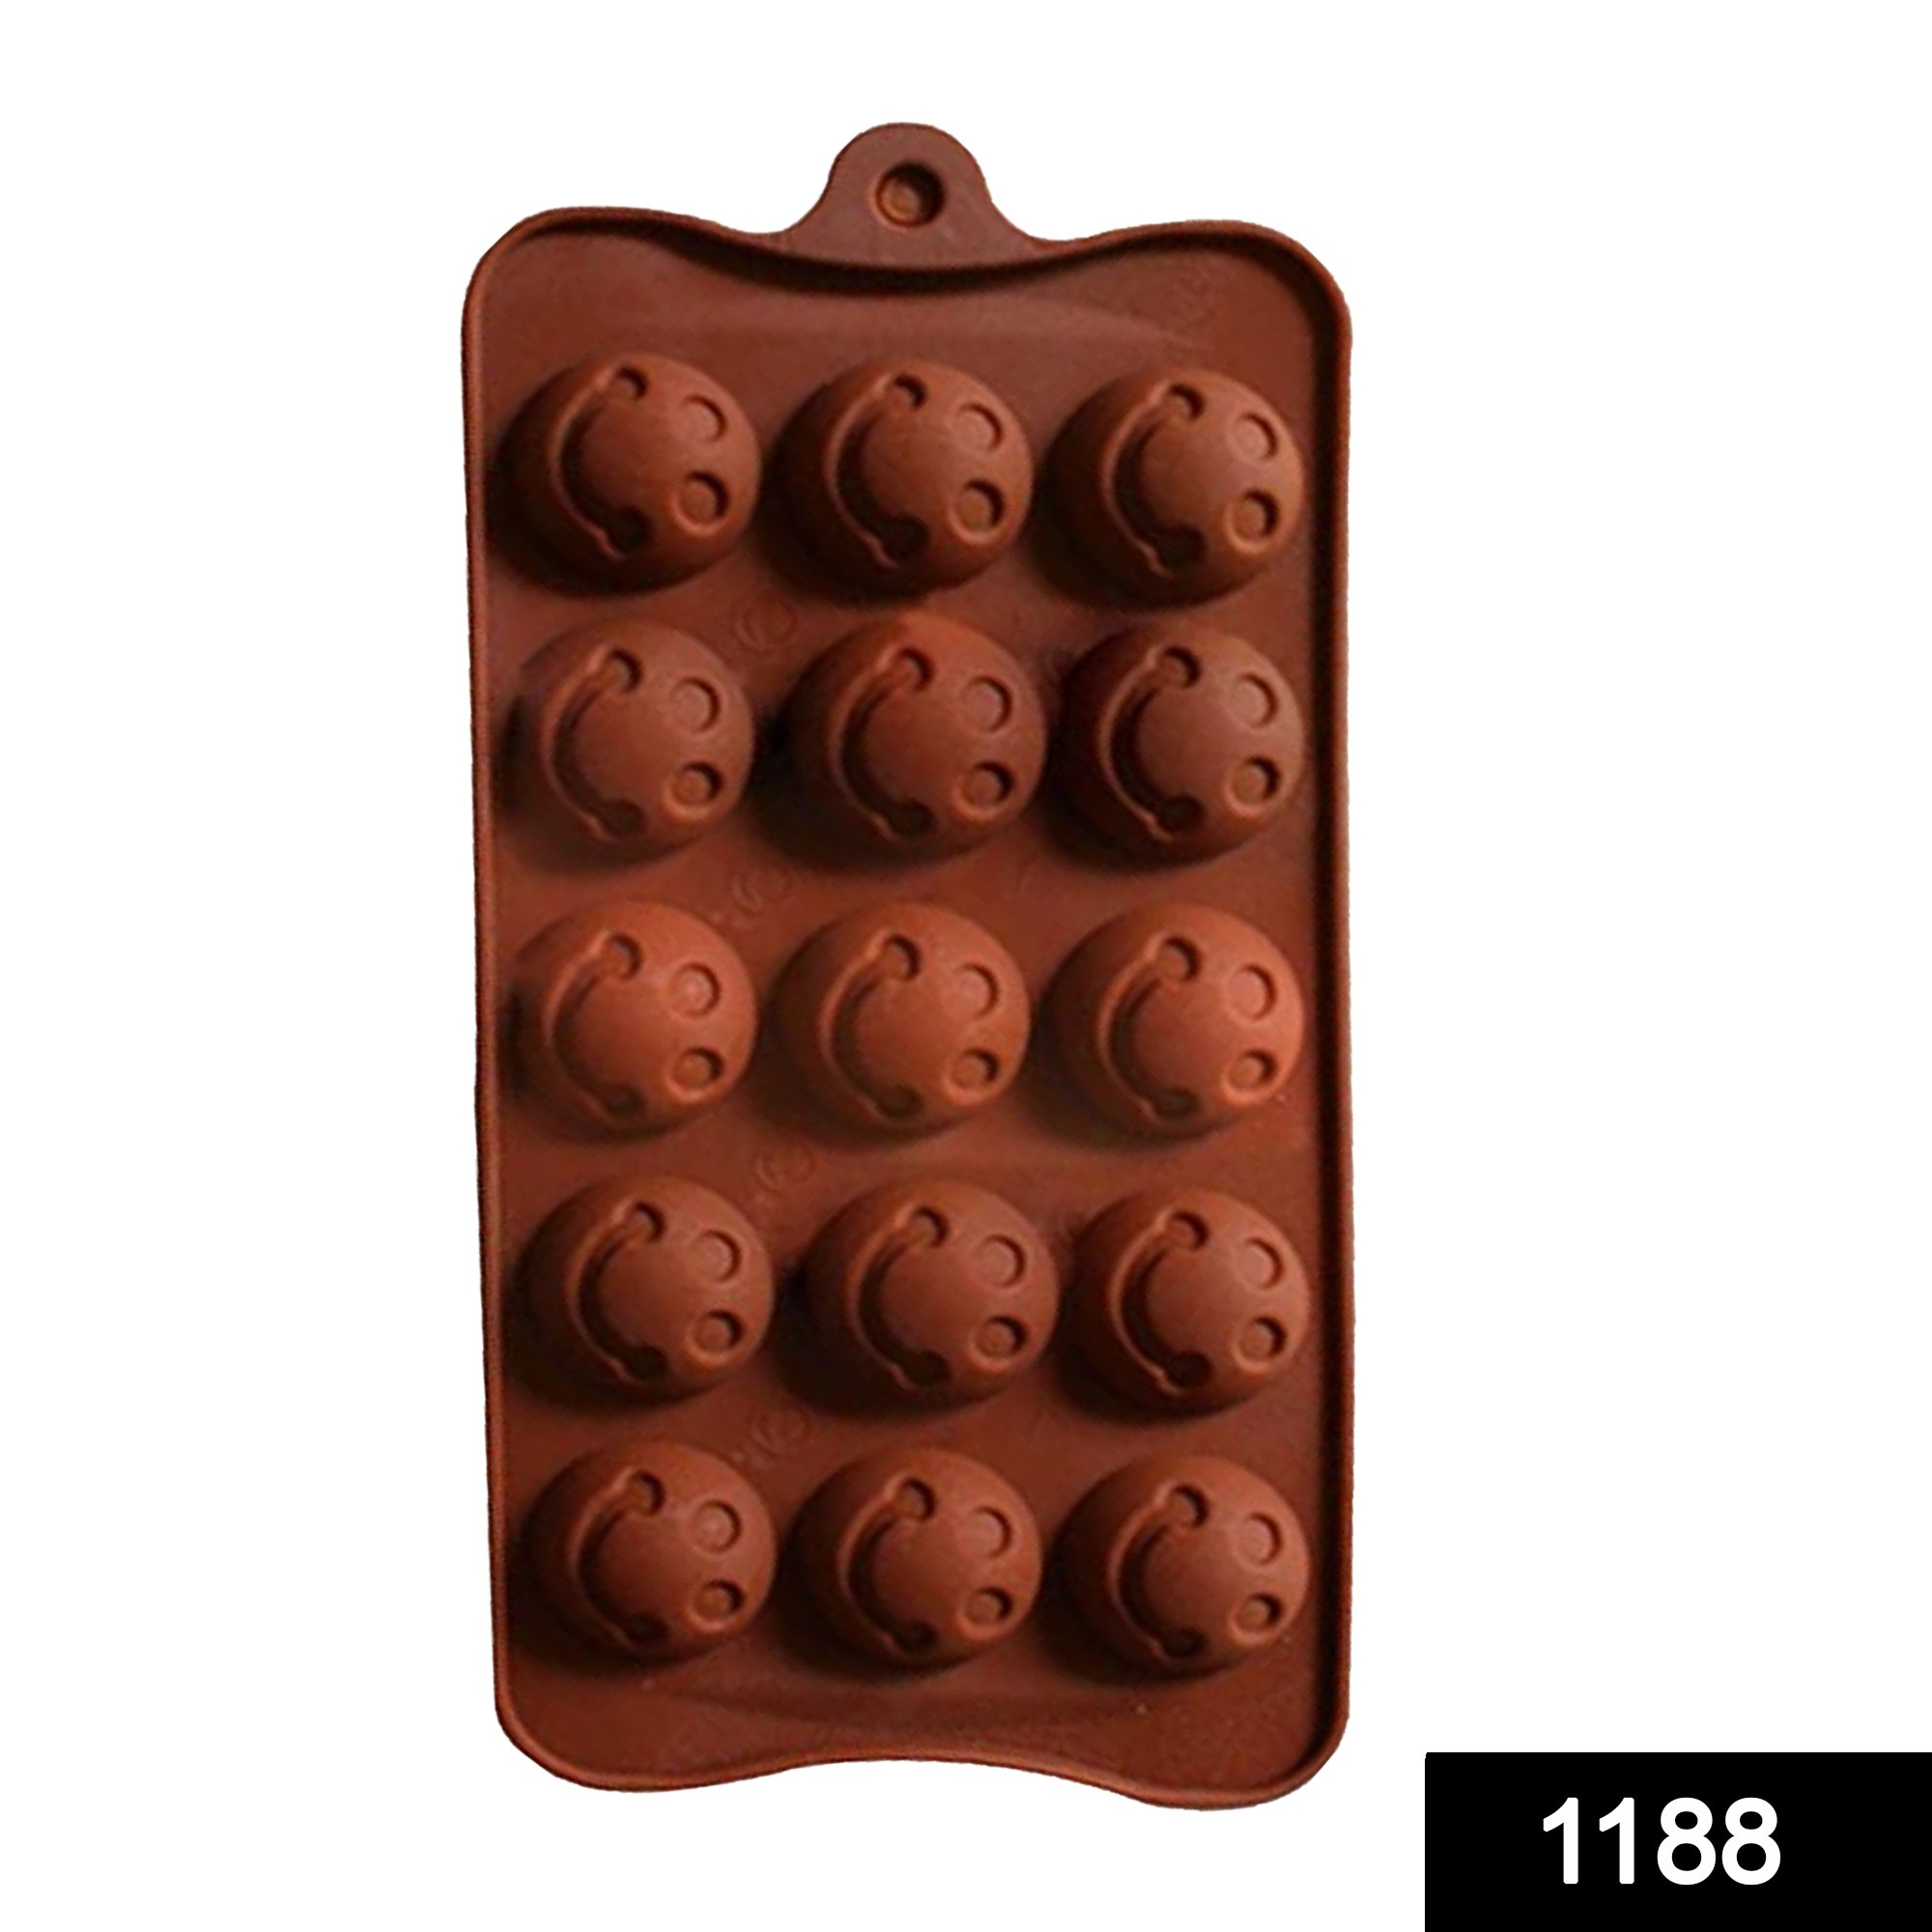 1188 Food Grade Non-Stick Reusable Silicone Smile Shape 15 Cavity Chocolate Molds / Baking Trays -